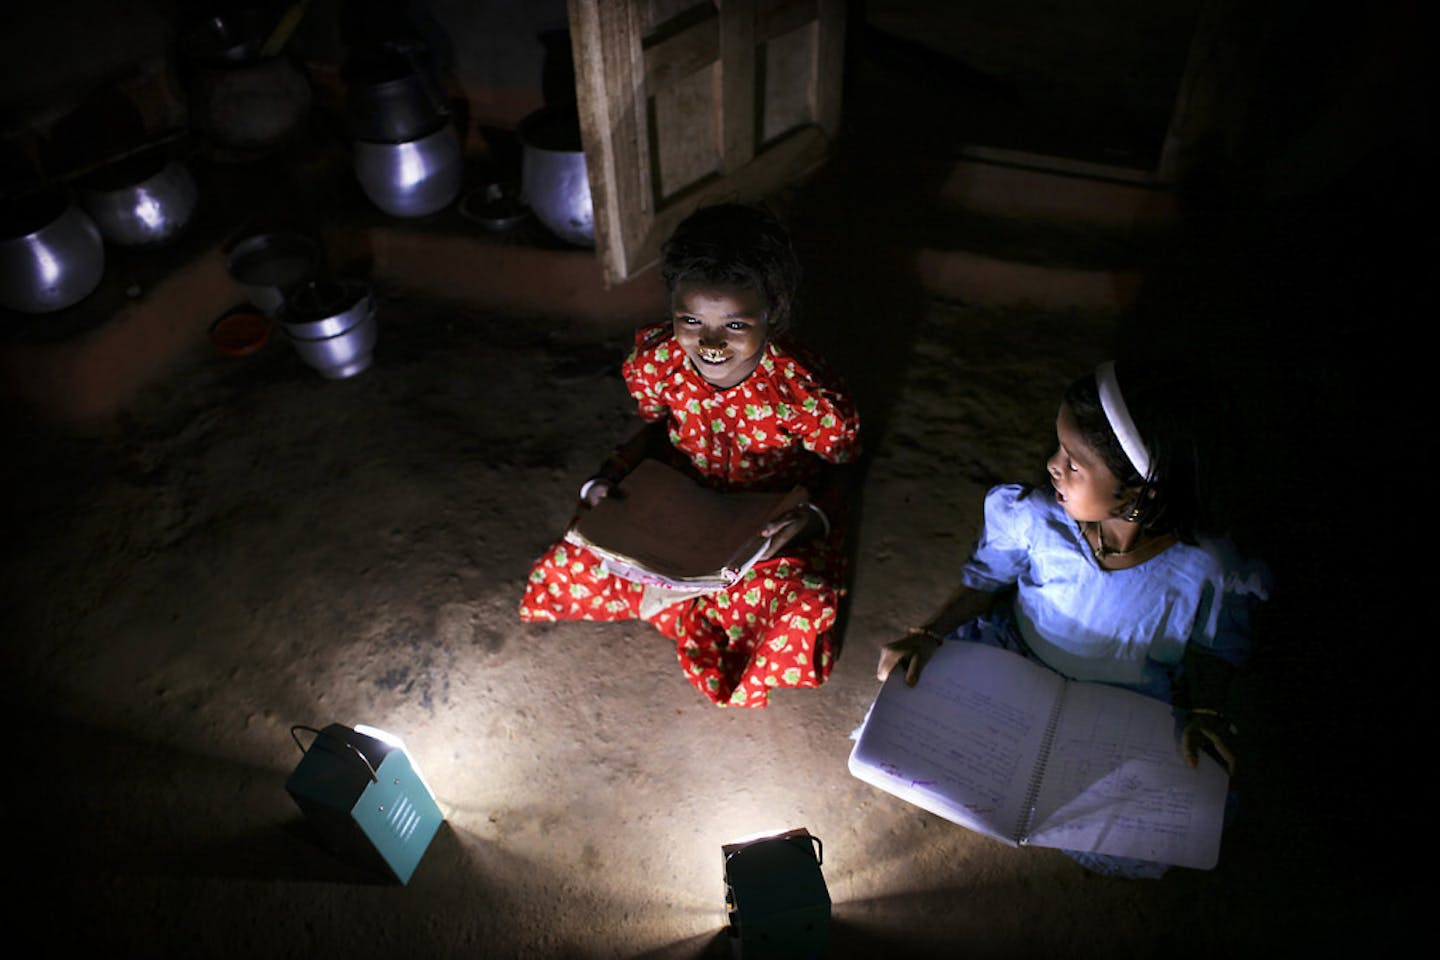 Girls in a village in India read books after dark with the help of solar lamps